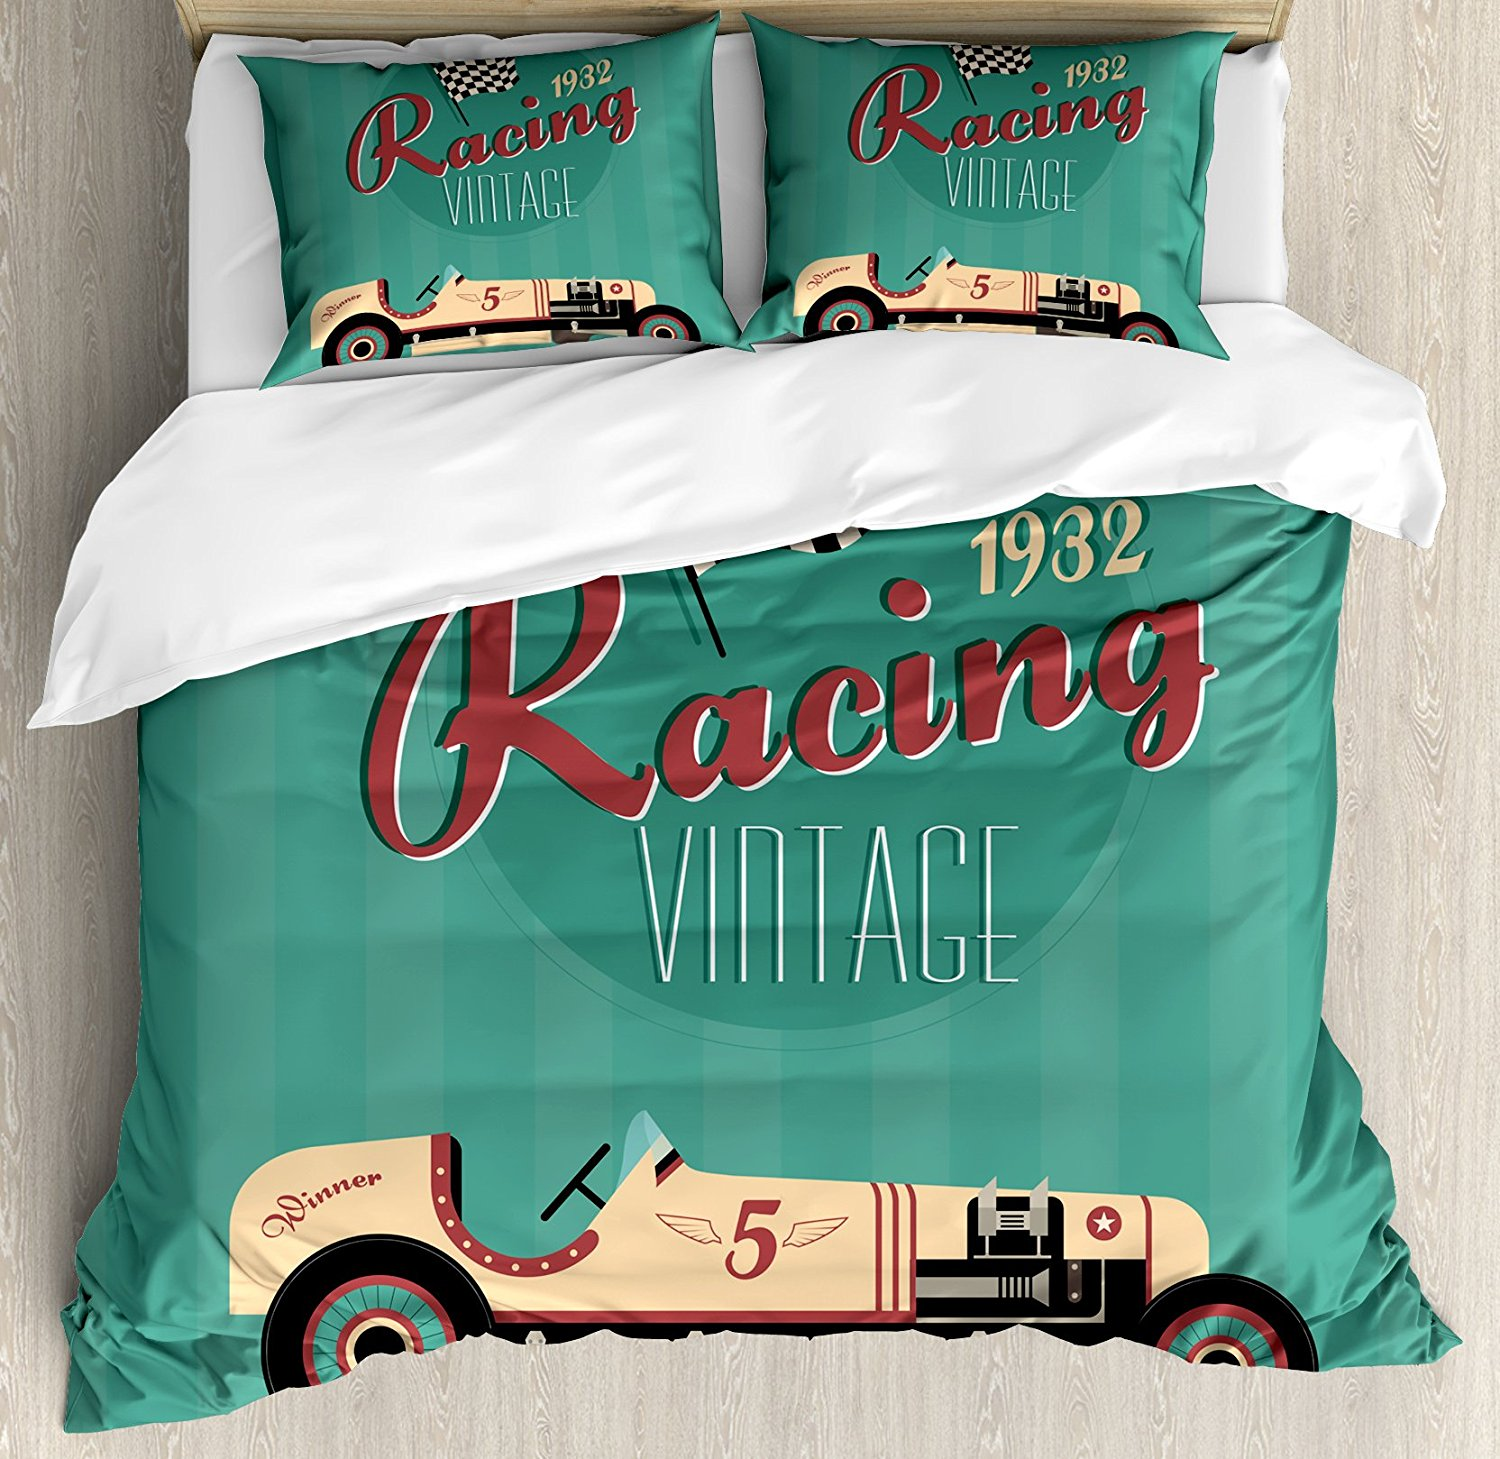 Cars Duvet Cover Set Poster Print of a Classic Vintage Automobile Nostalgia Rally Antique Machine 4 Piece Bedding Set